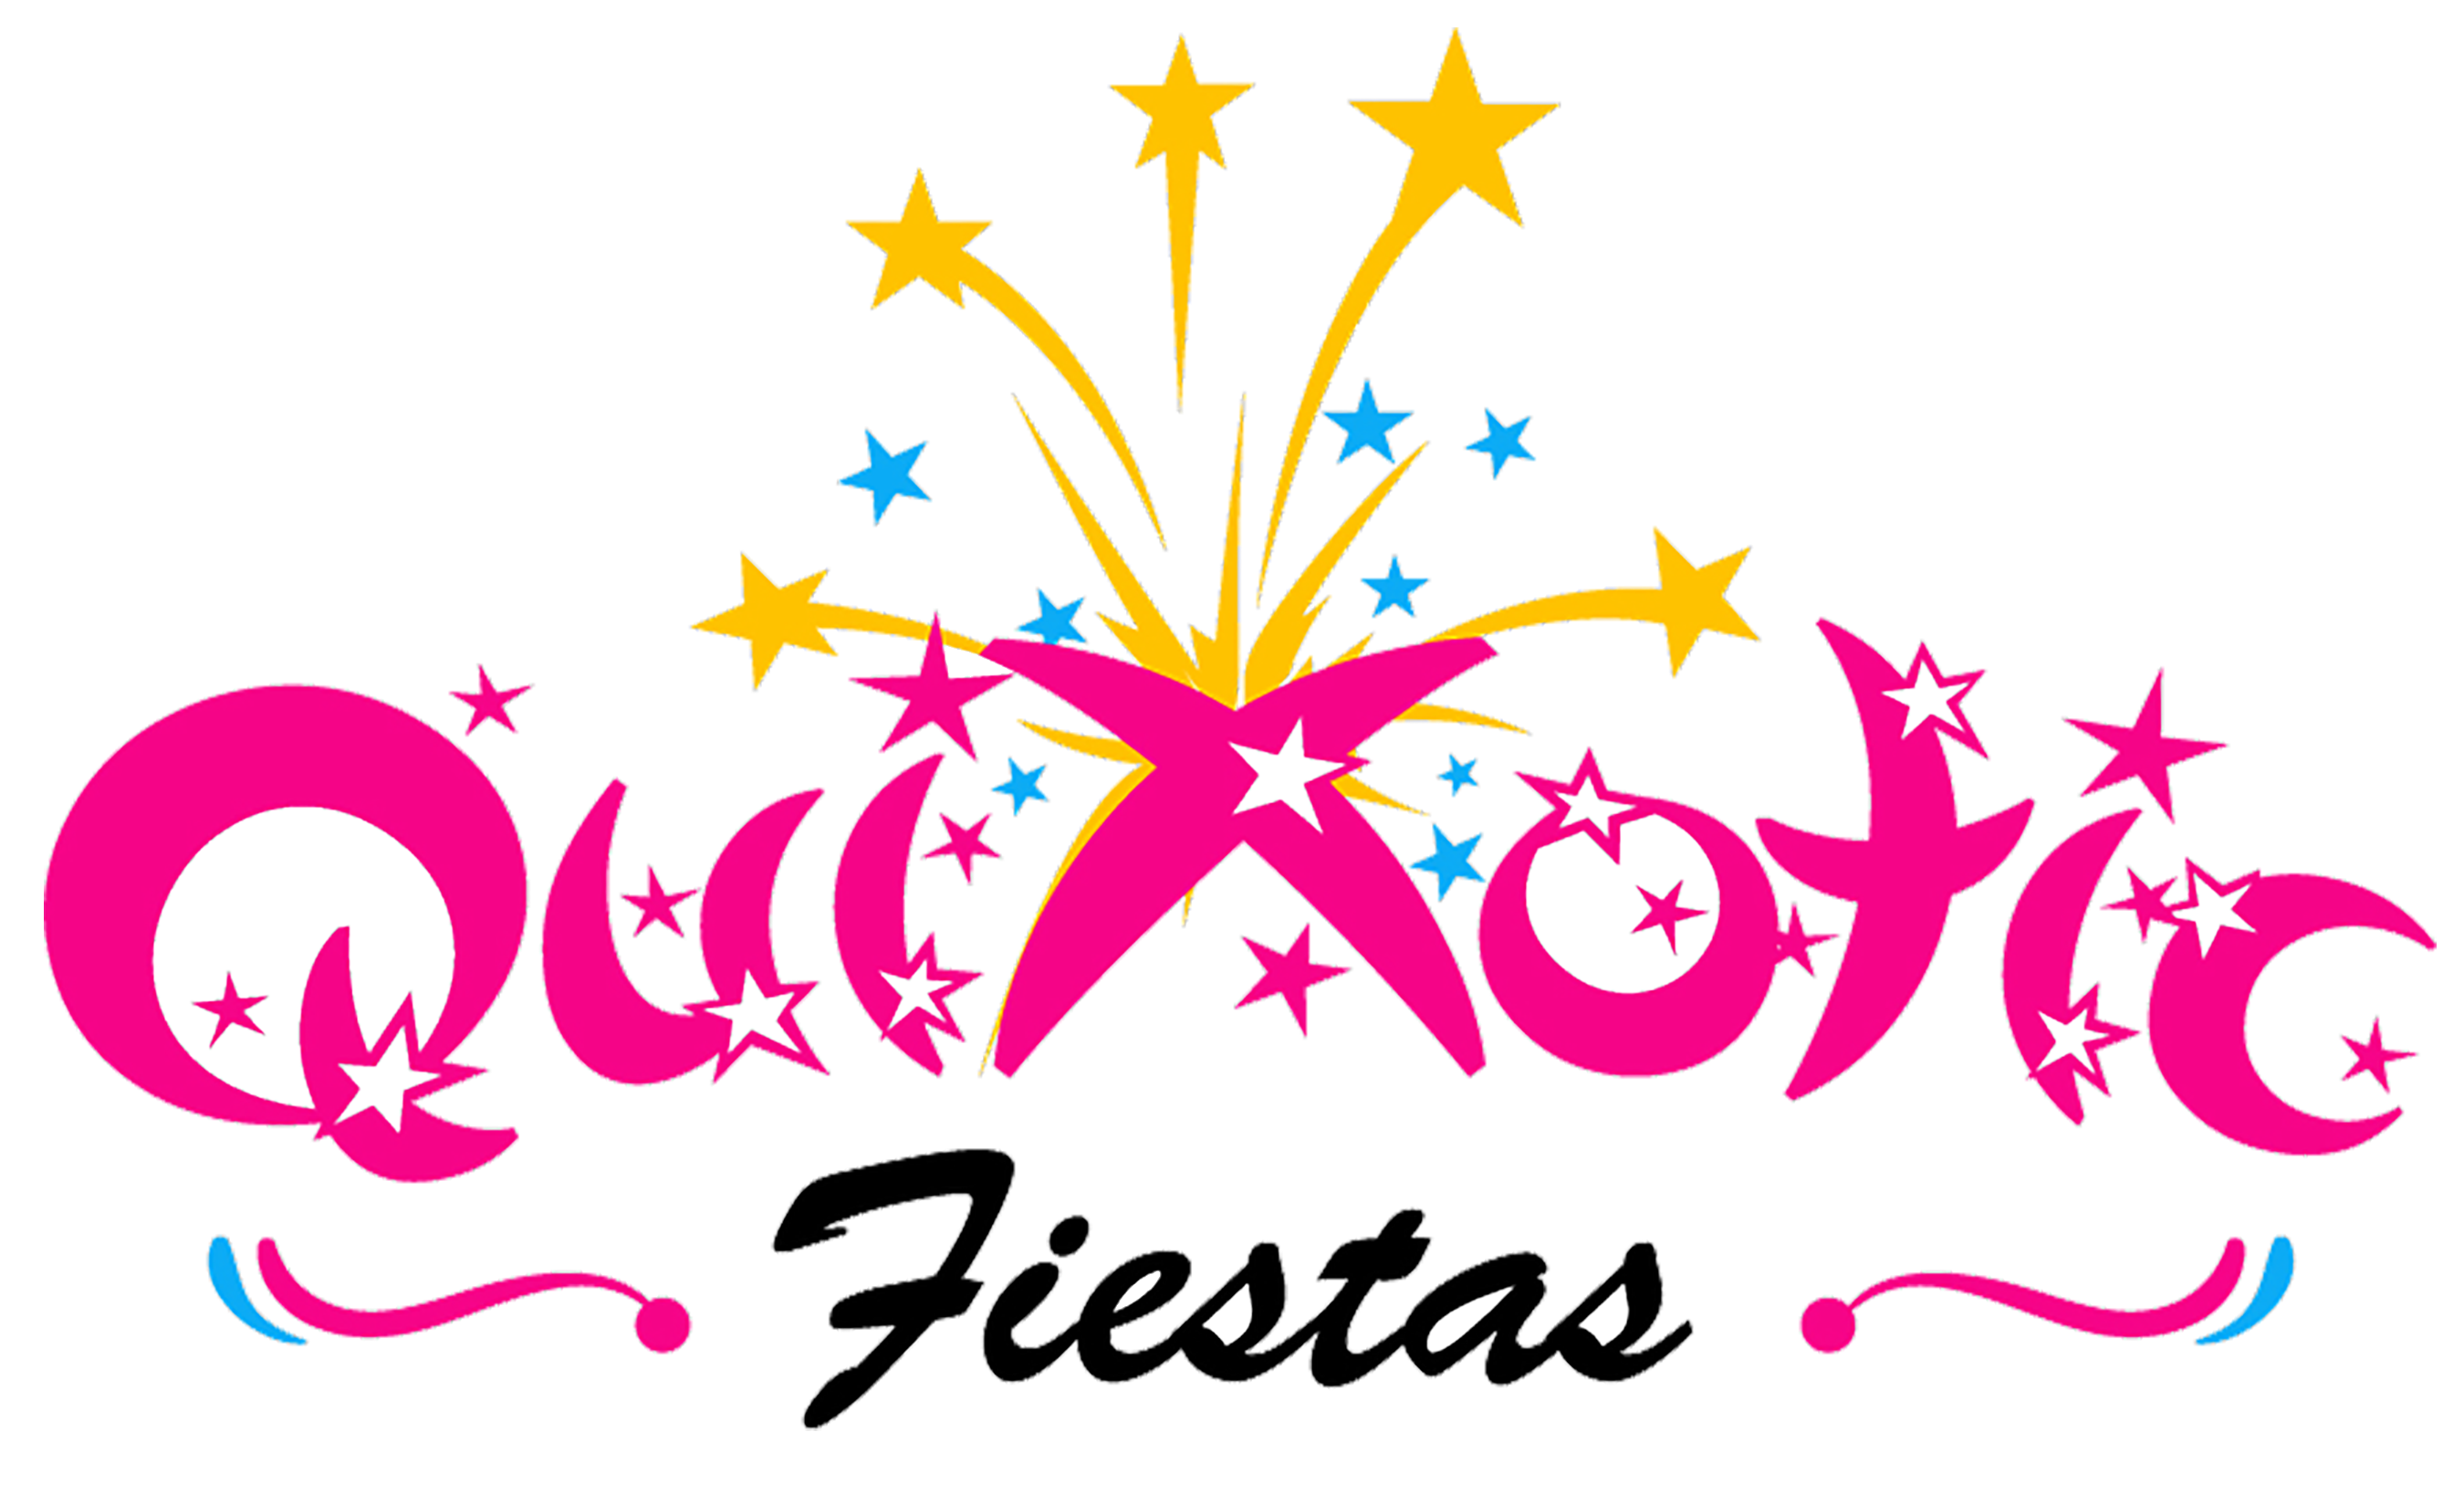 QuixoticFiestas logo with border